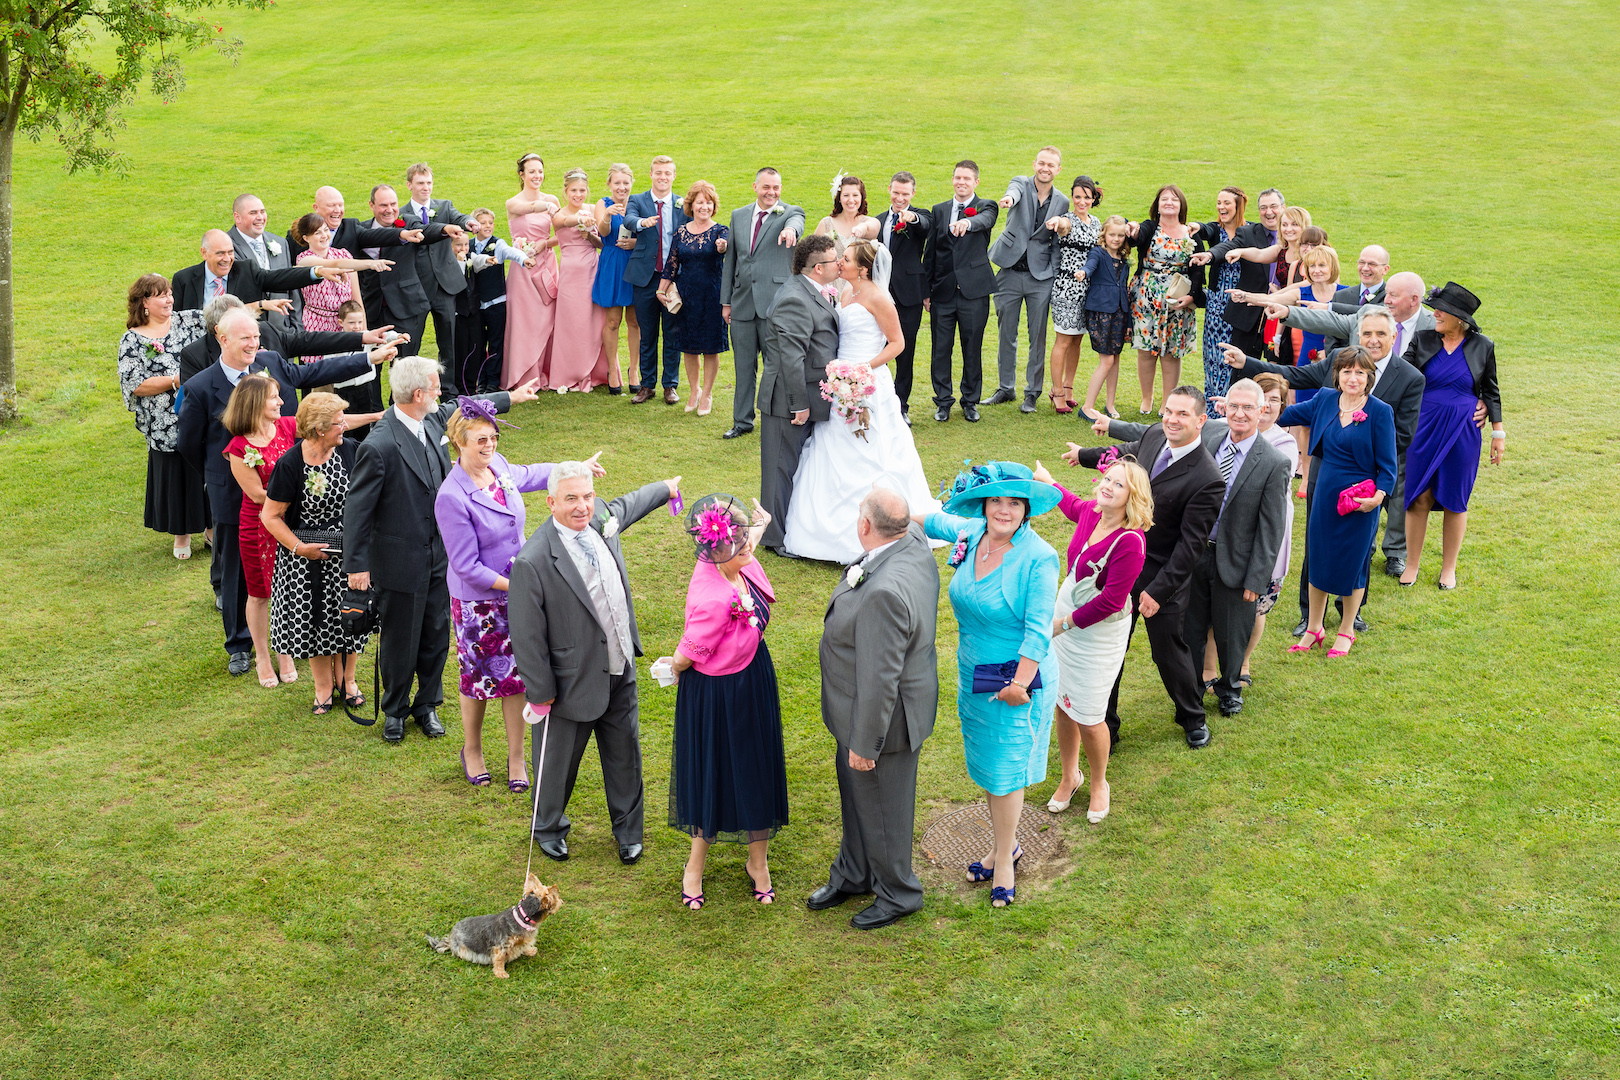 Photoneta-Wedding-groups-1